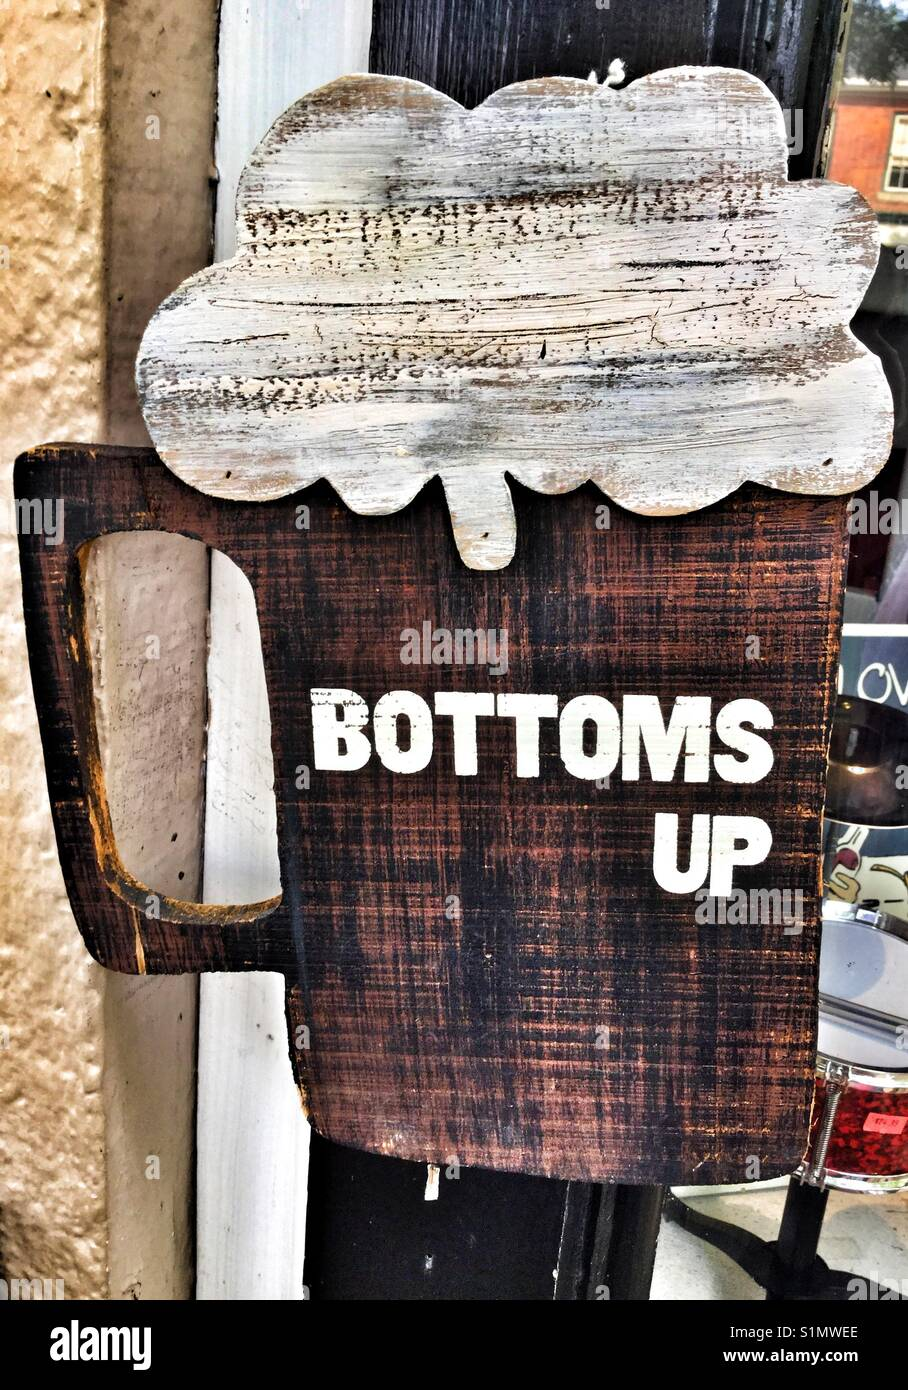 Bottoms up beer sign. Stock Photo